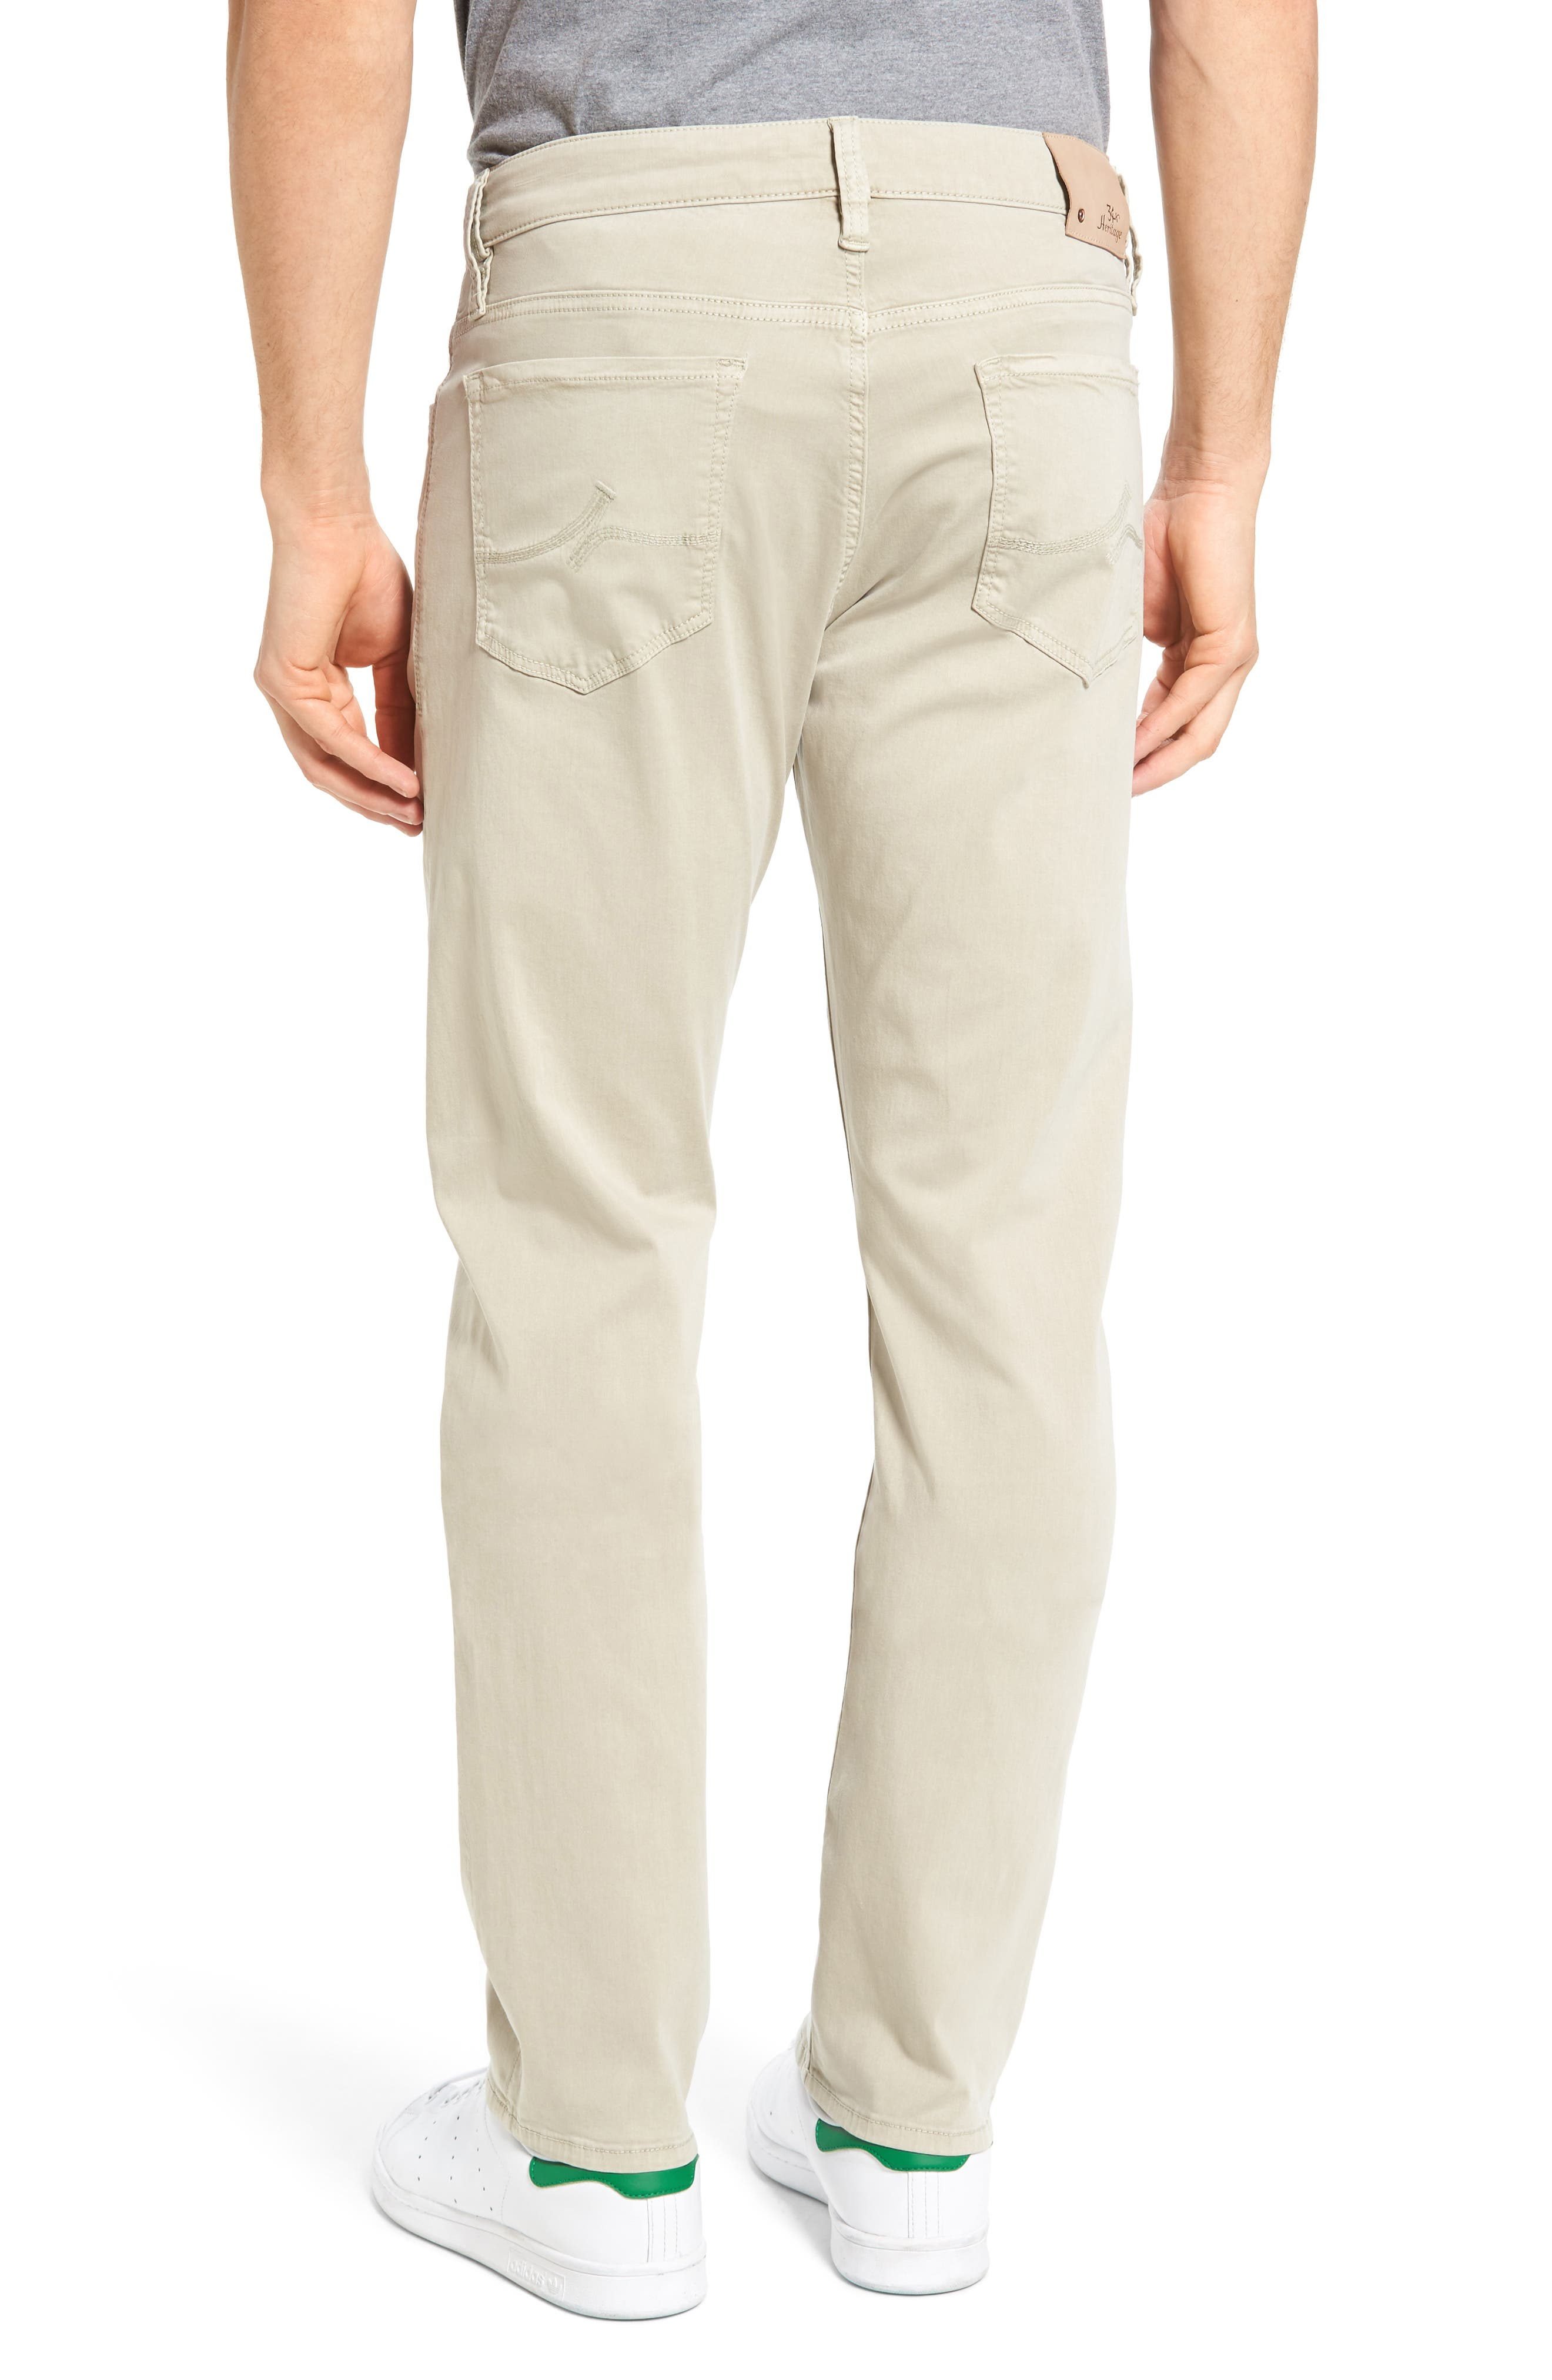 Courage Straight Leg Jeans,                             Alternate thumbnail 2, color,                             Stone Twill